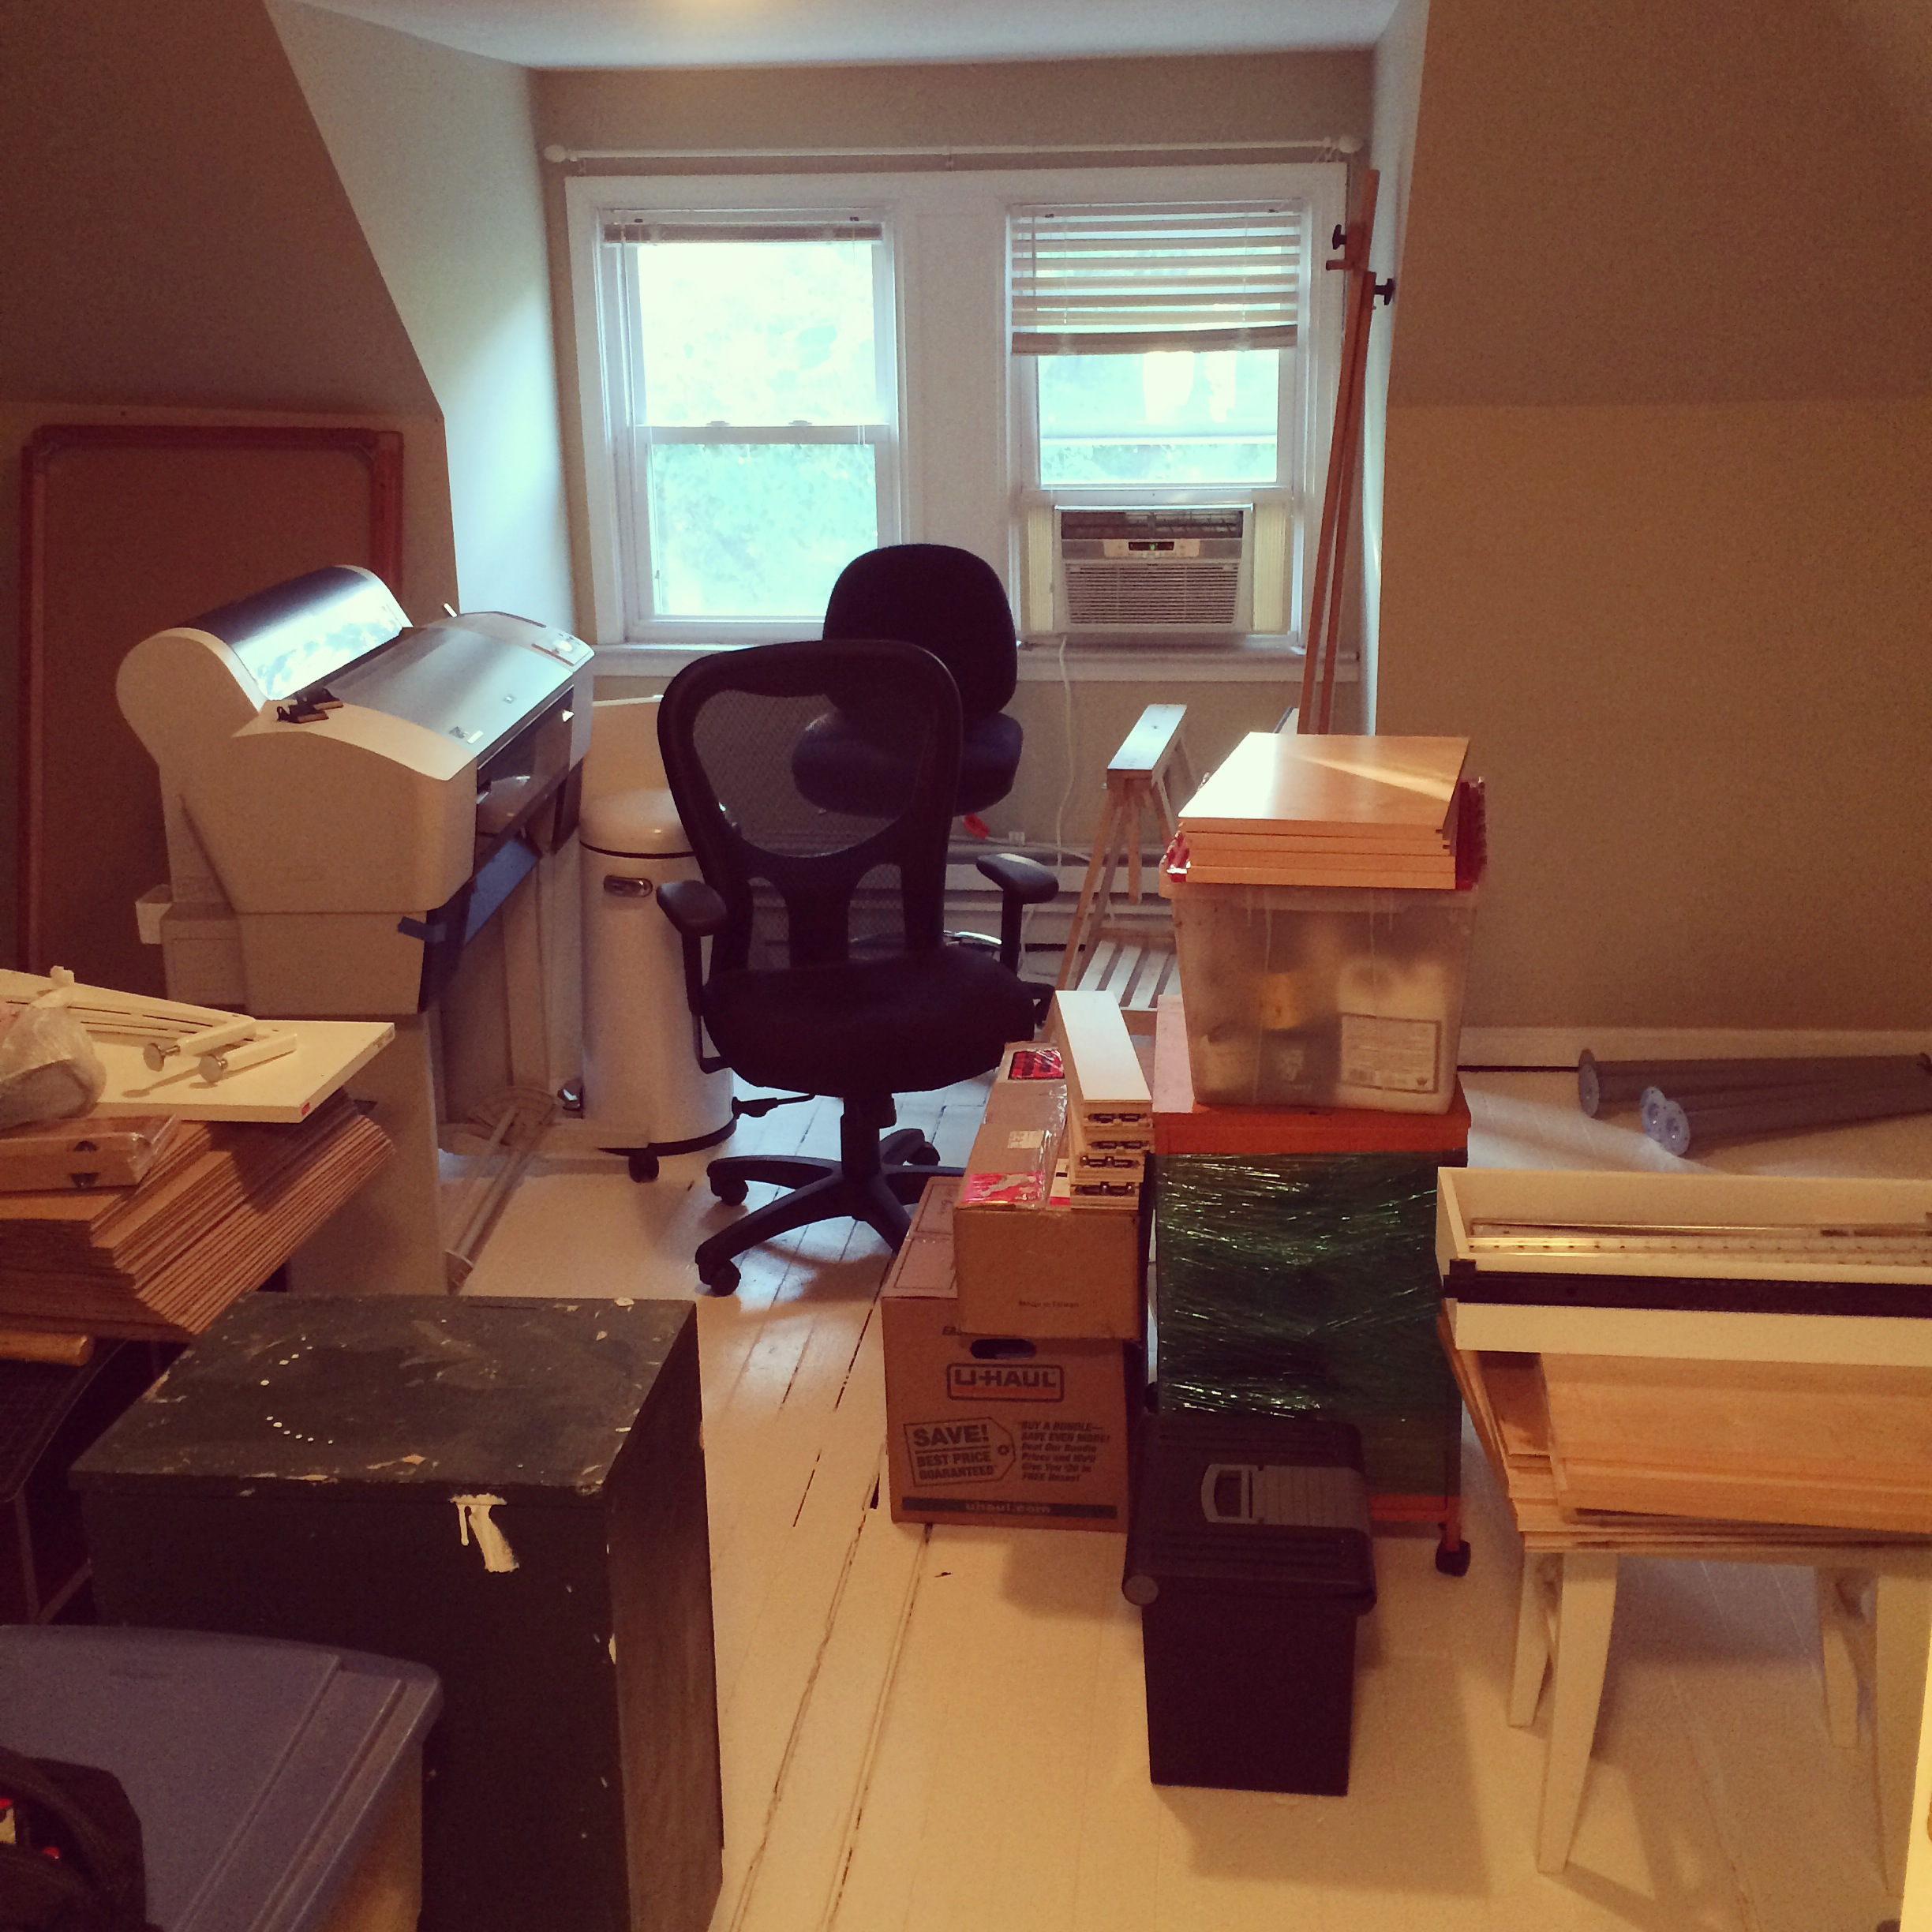 Ugh. What a mess. Setting up a new studio is always a daunting, yet exciting undertaking.